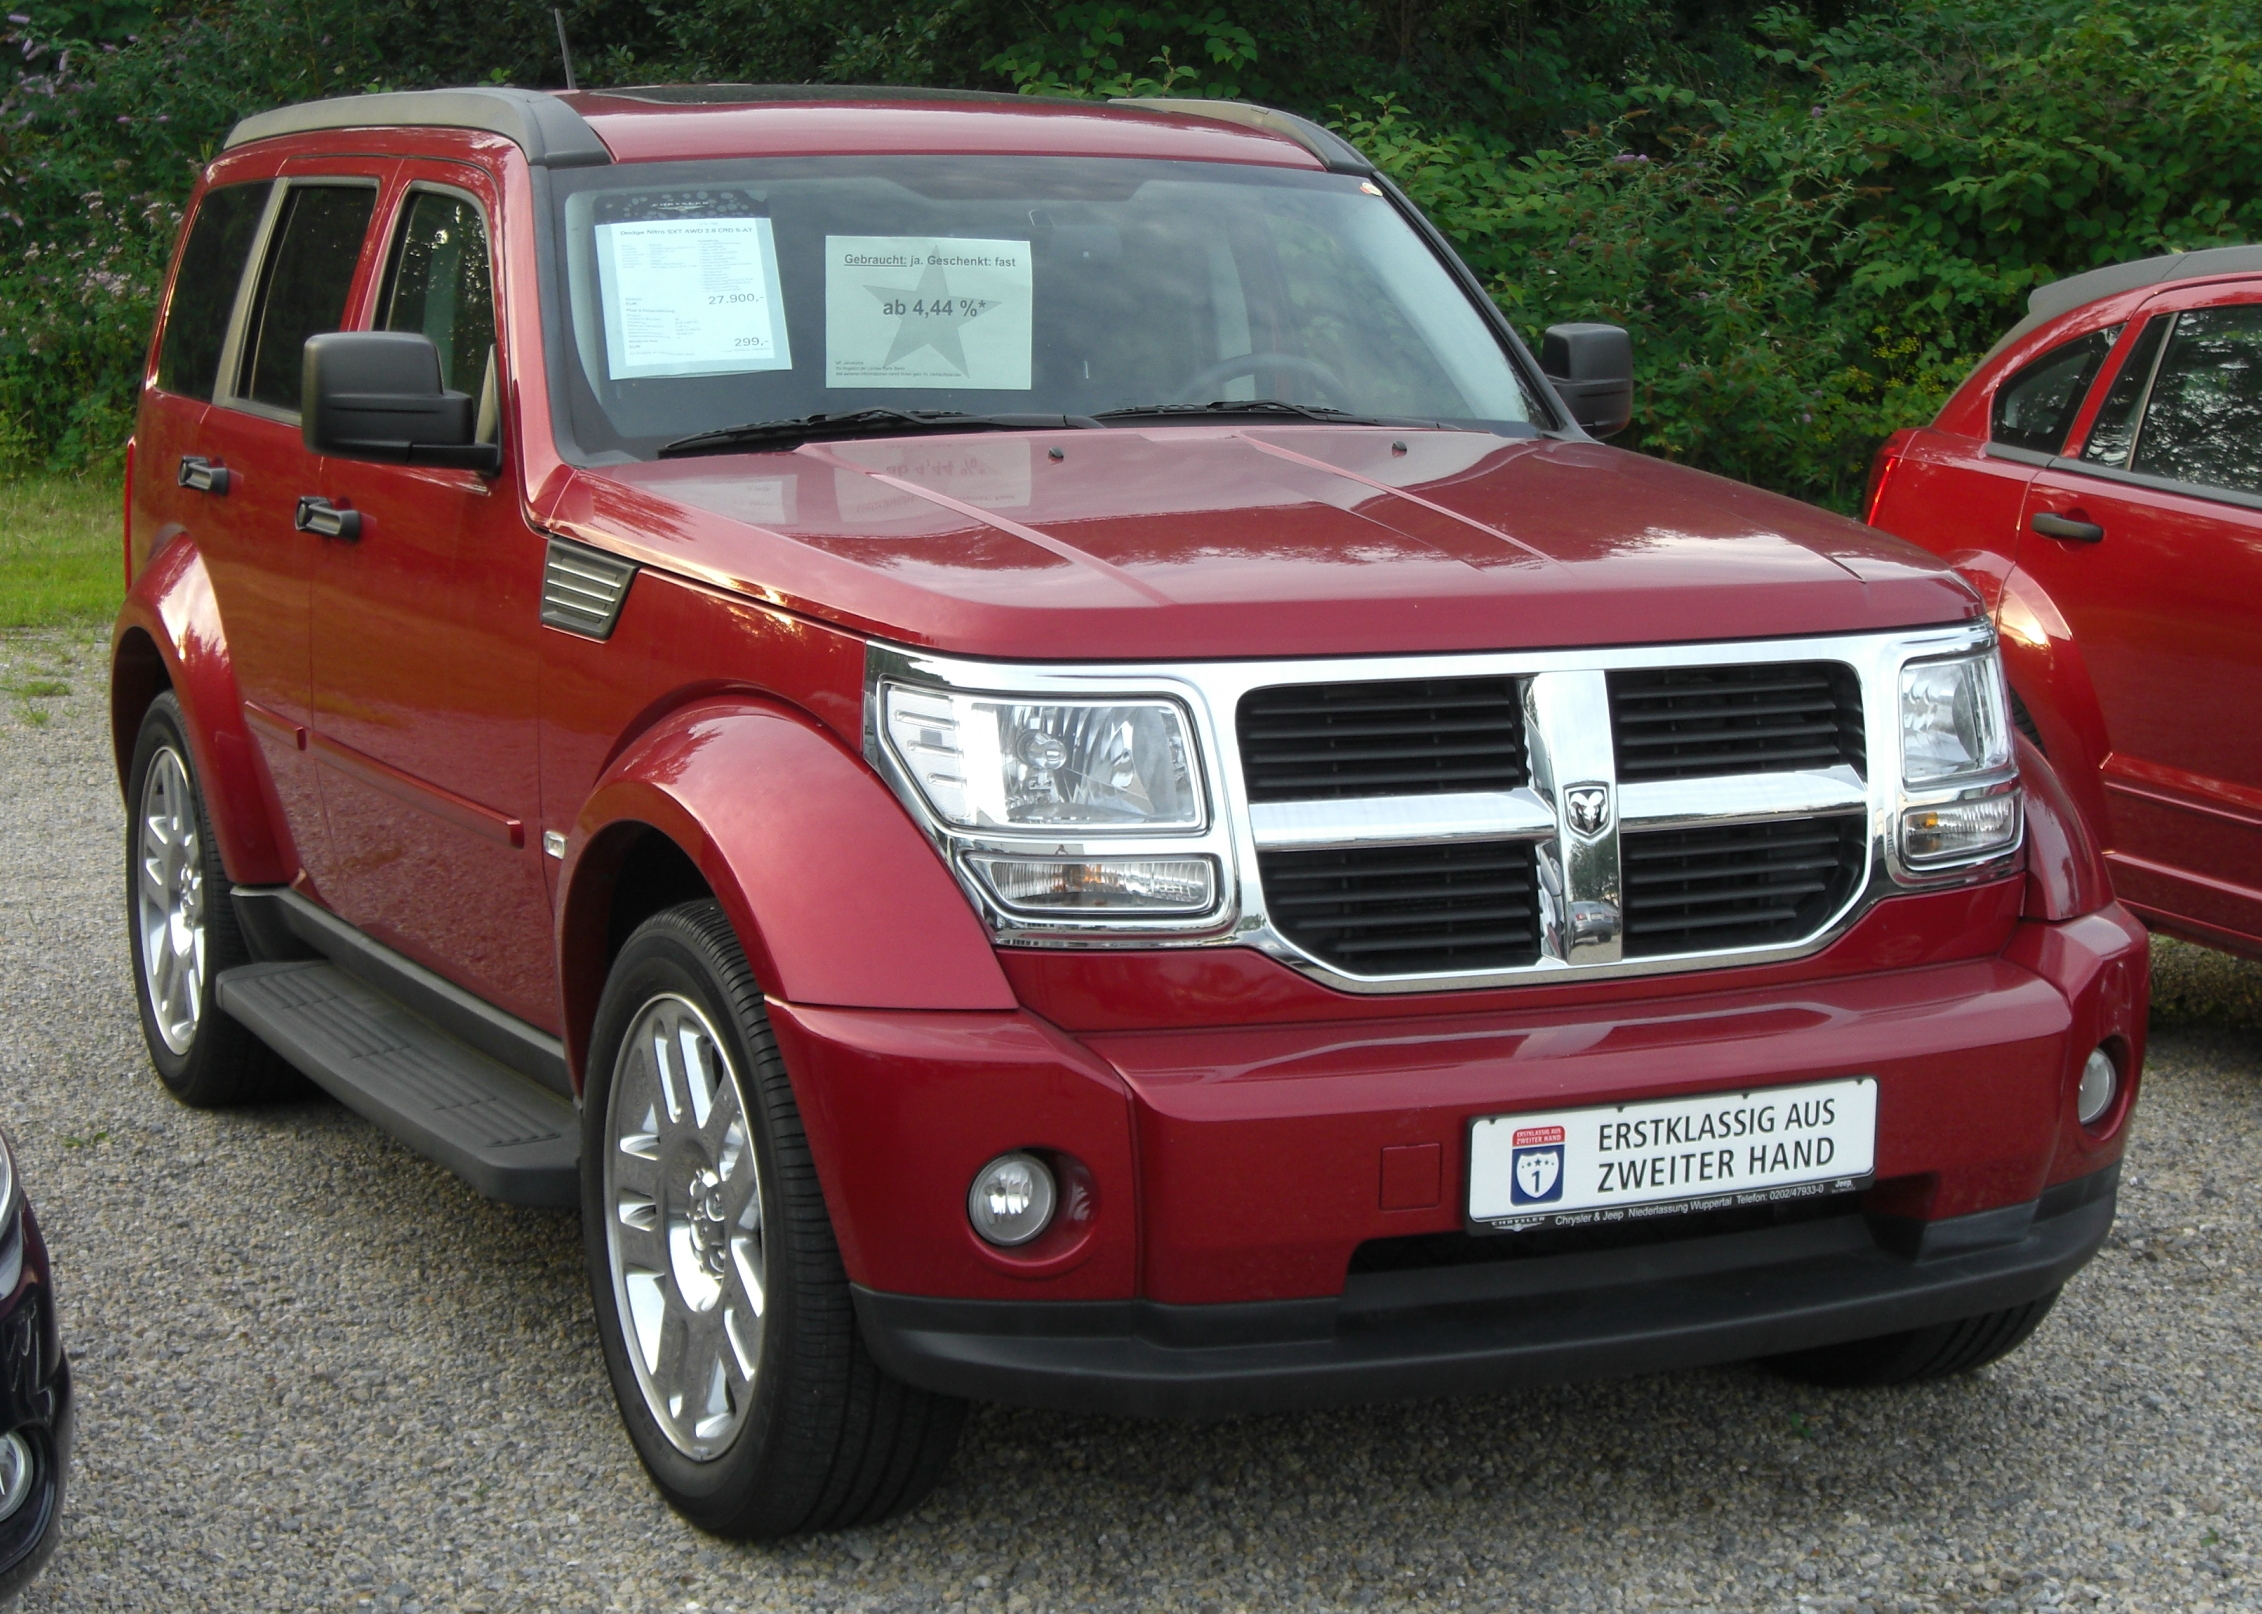 file dodge nitro 2 8 crd wikimedia commons. Black Bedroom Furniture Sets. Home Design Ideas